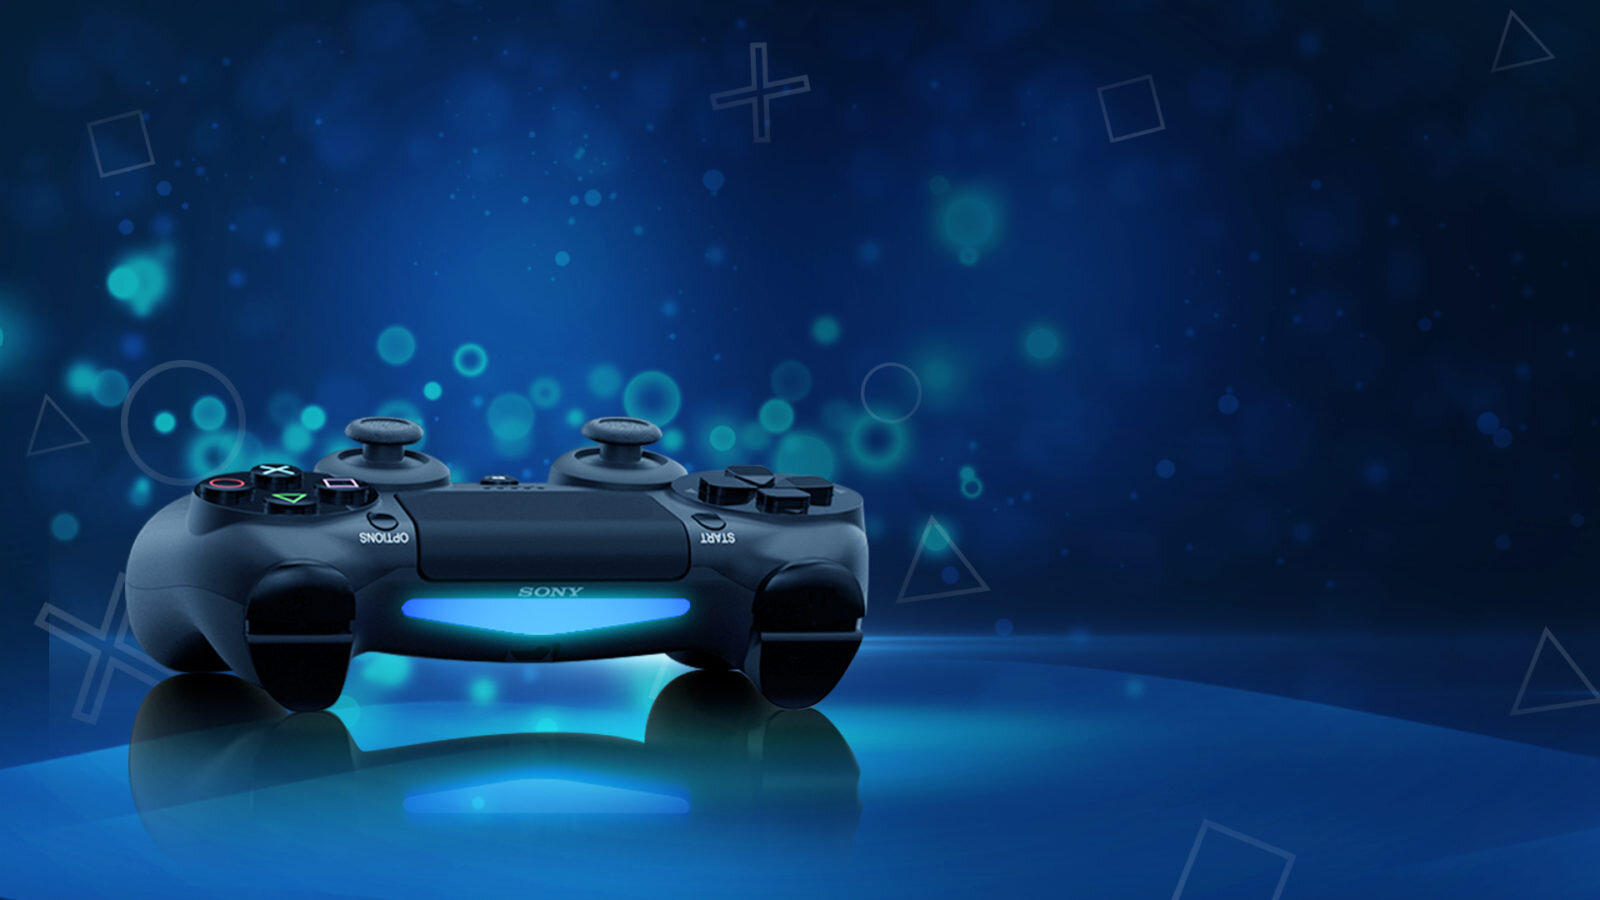 Sony To Unveil Playstation 5 Launch Video Game Titles First Look At Games At June 4 Event